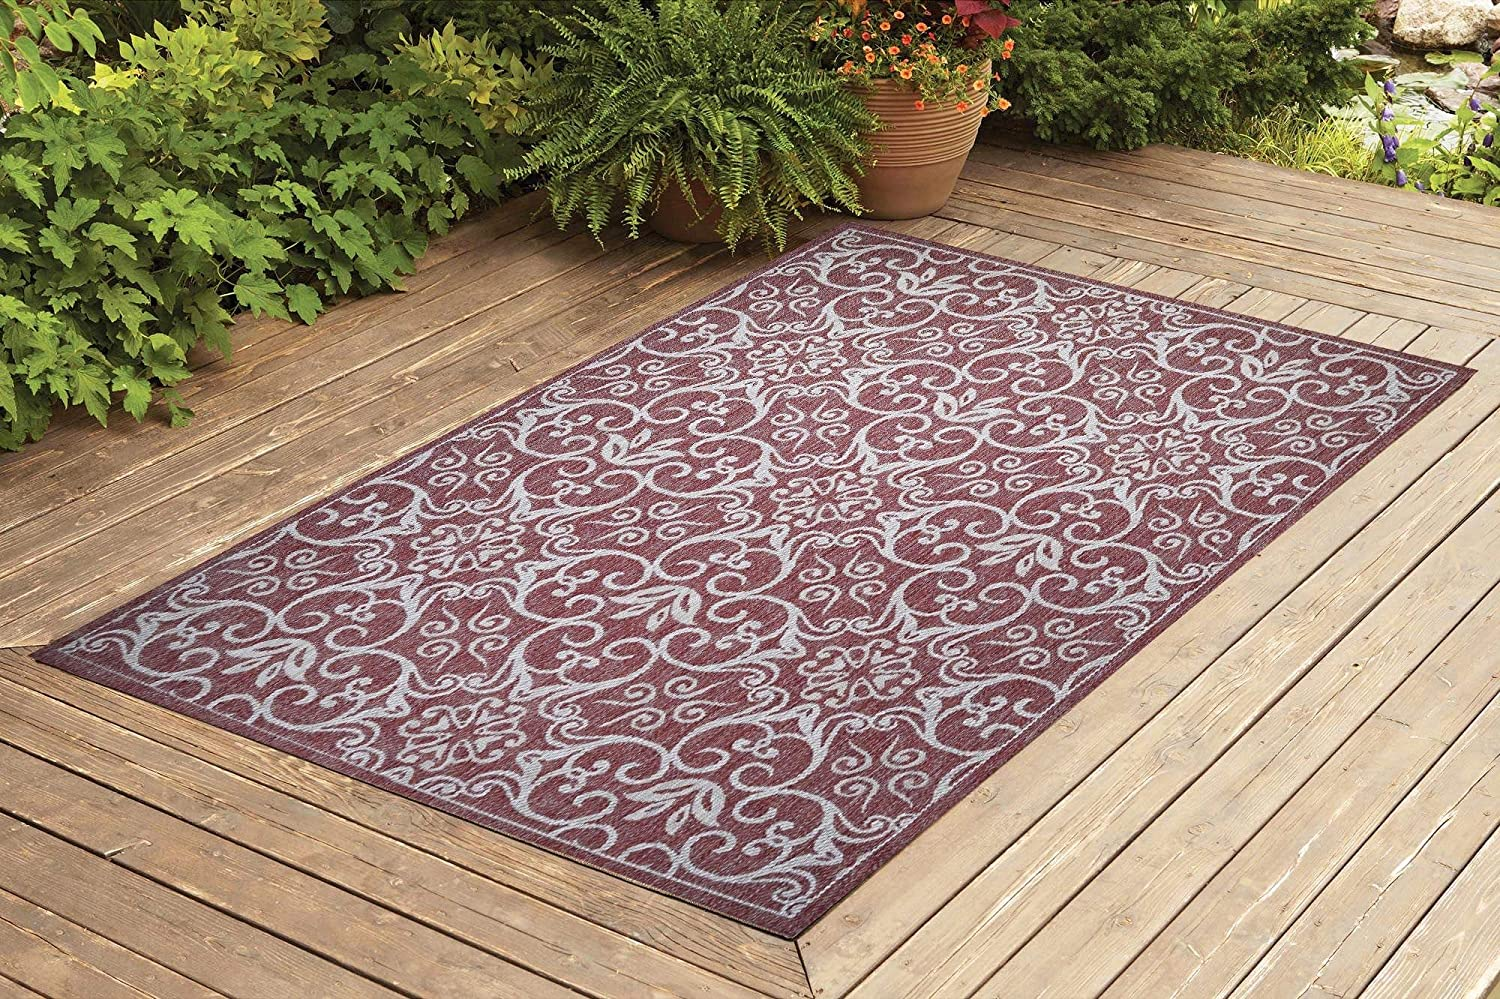 Benissimo Indoor Outdoor Rug Rams Horn Collection, Natural Sisal Woven and Jute Backing Area Rugs for Living Room, Bedroom, Kitchen, Entryway, Hallway, Patio, Farmhouse Decor 8x10, Brick